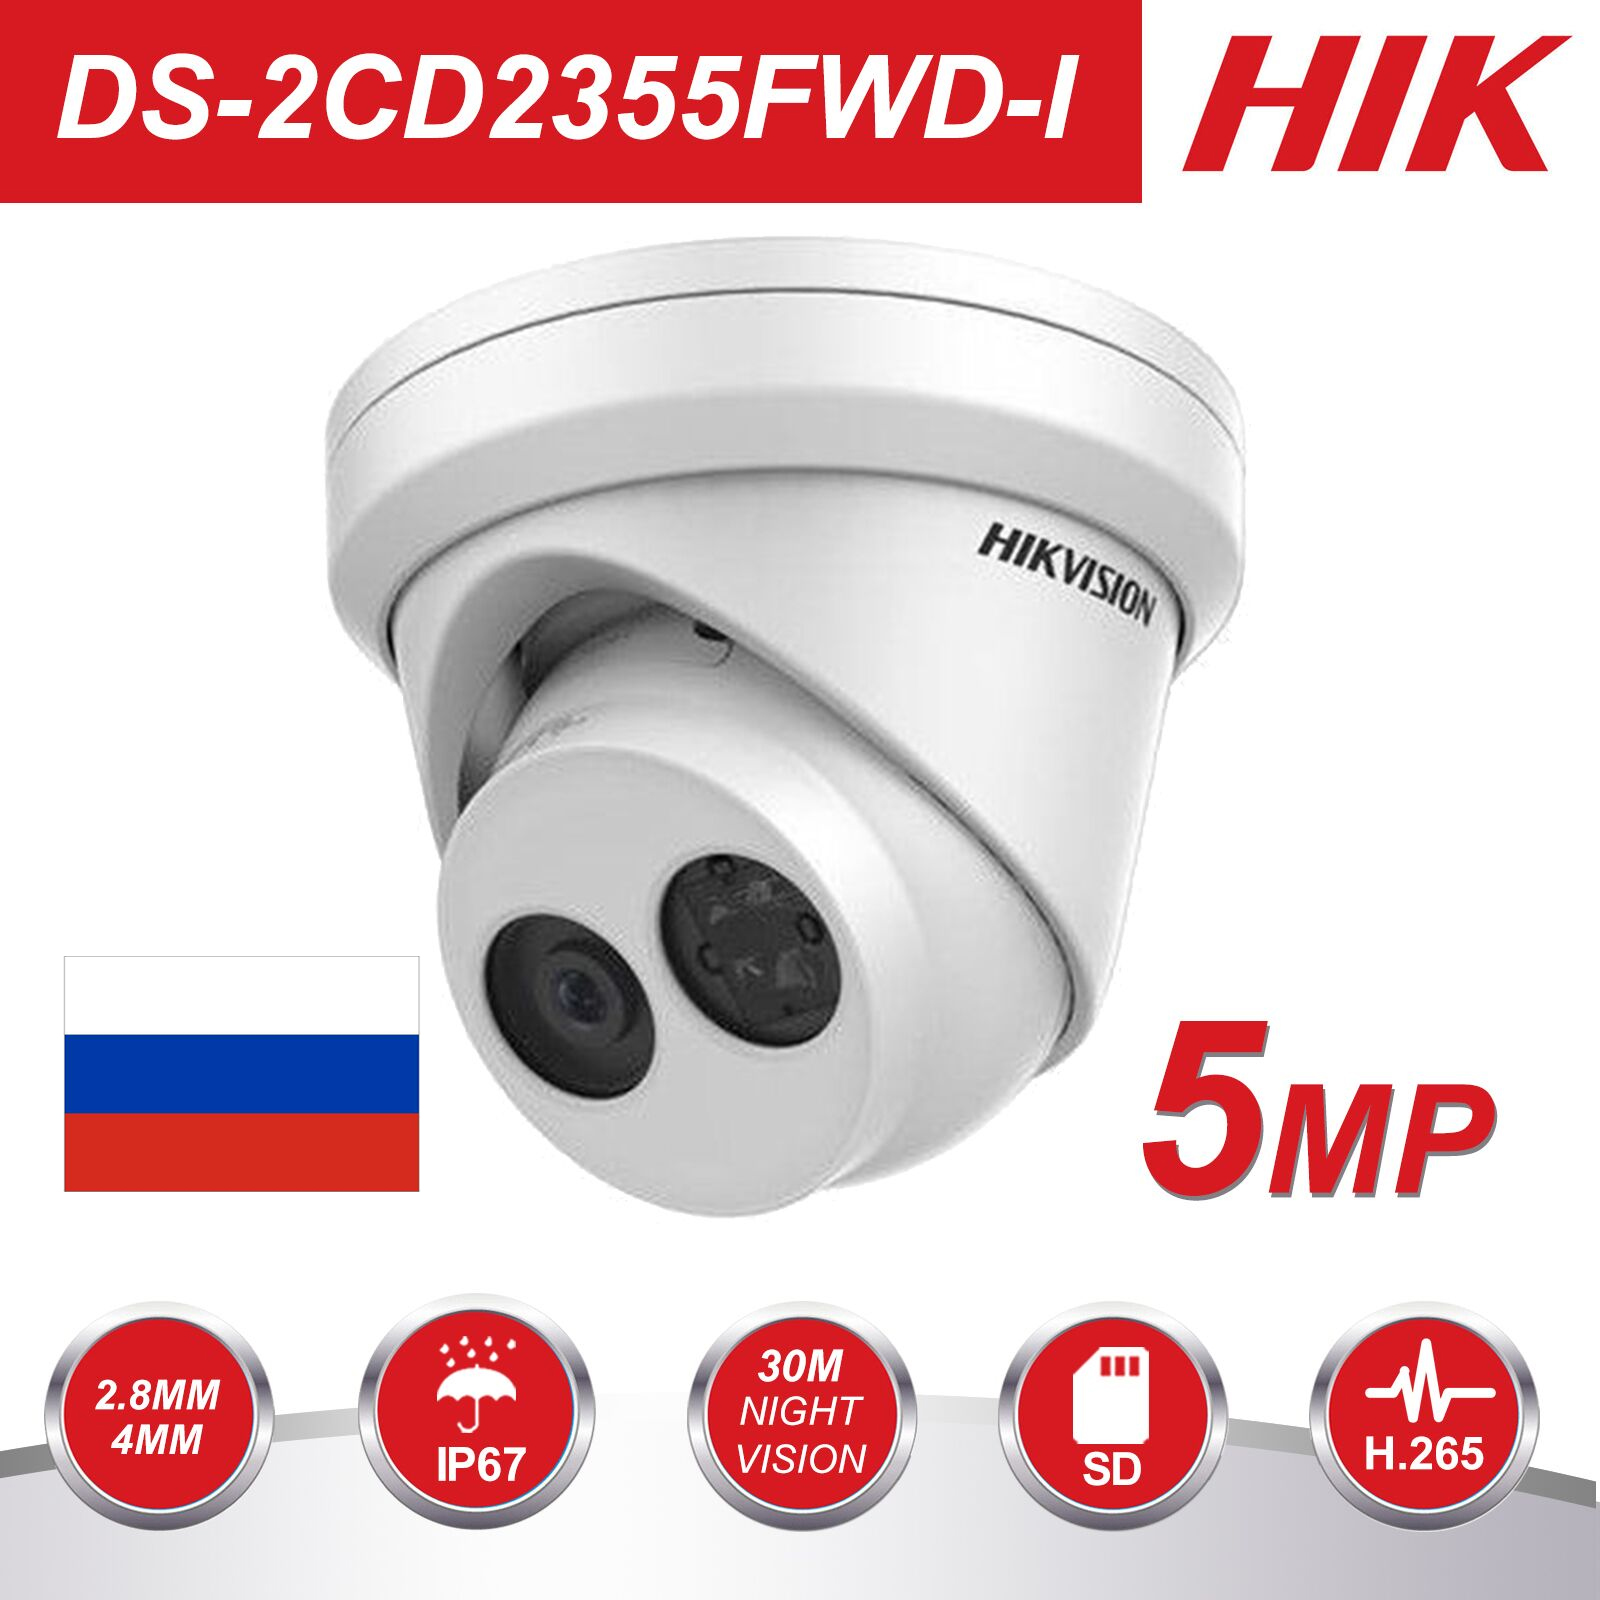 Hikvision H.265 5MP Turret IP Camera DS-2CD2355FWD-I 2.8mm lens Built-in SD card